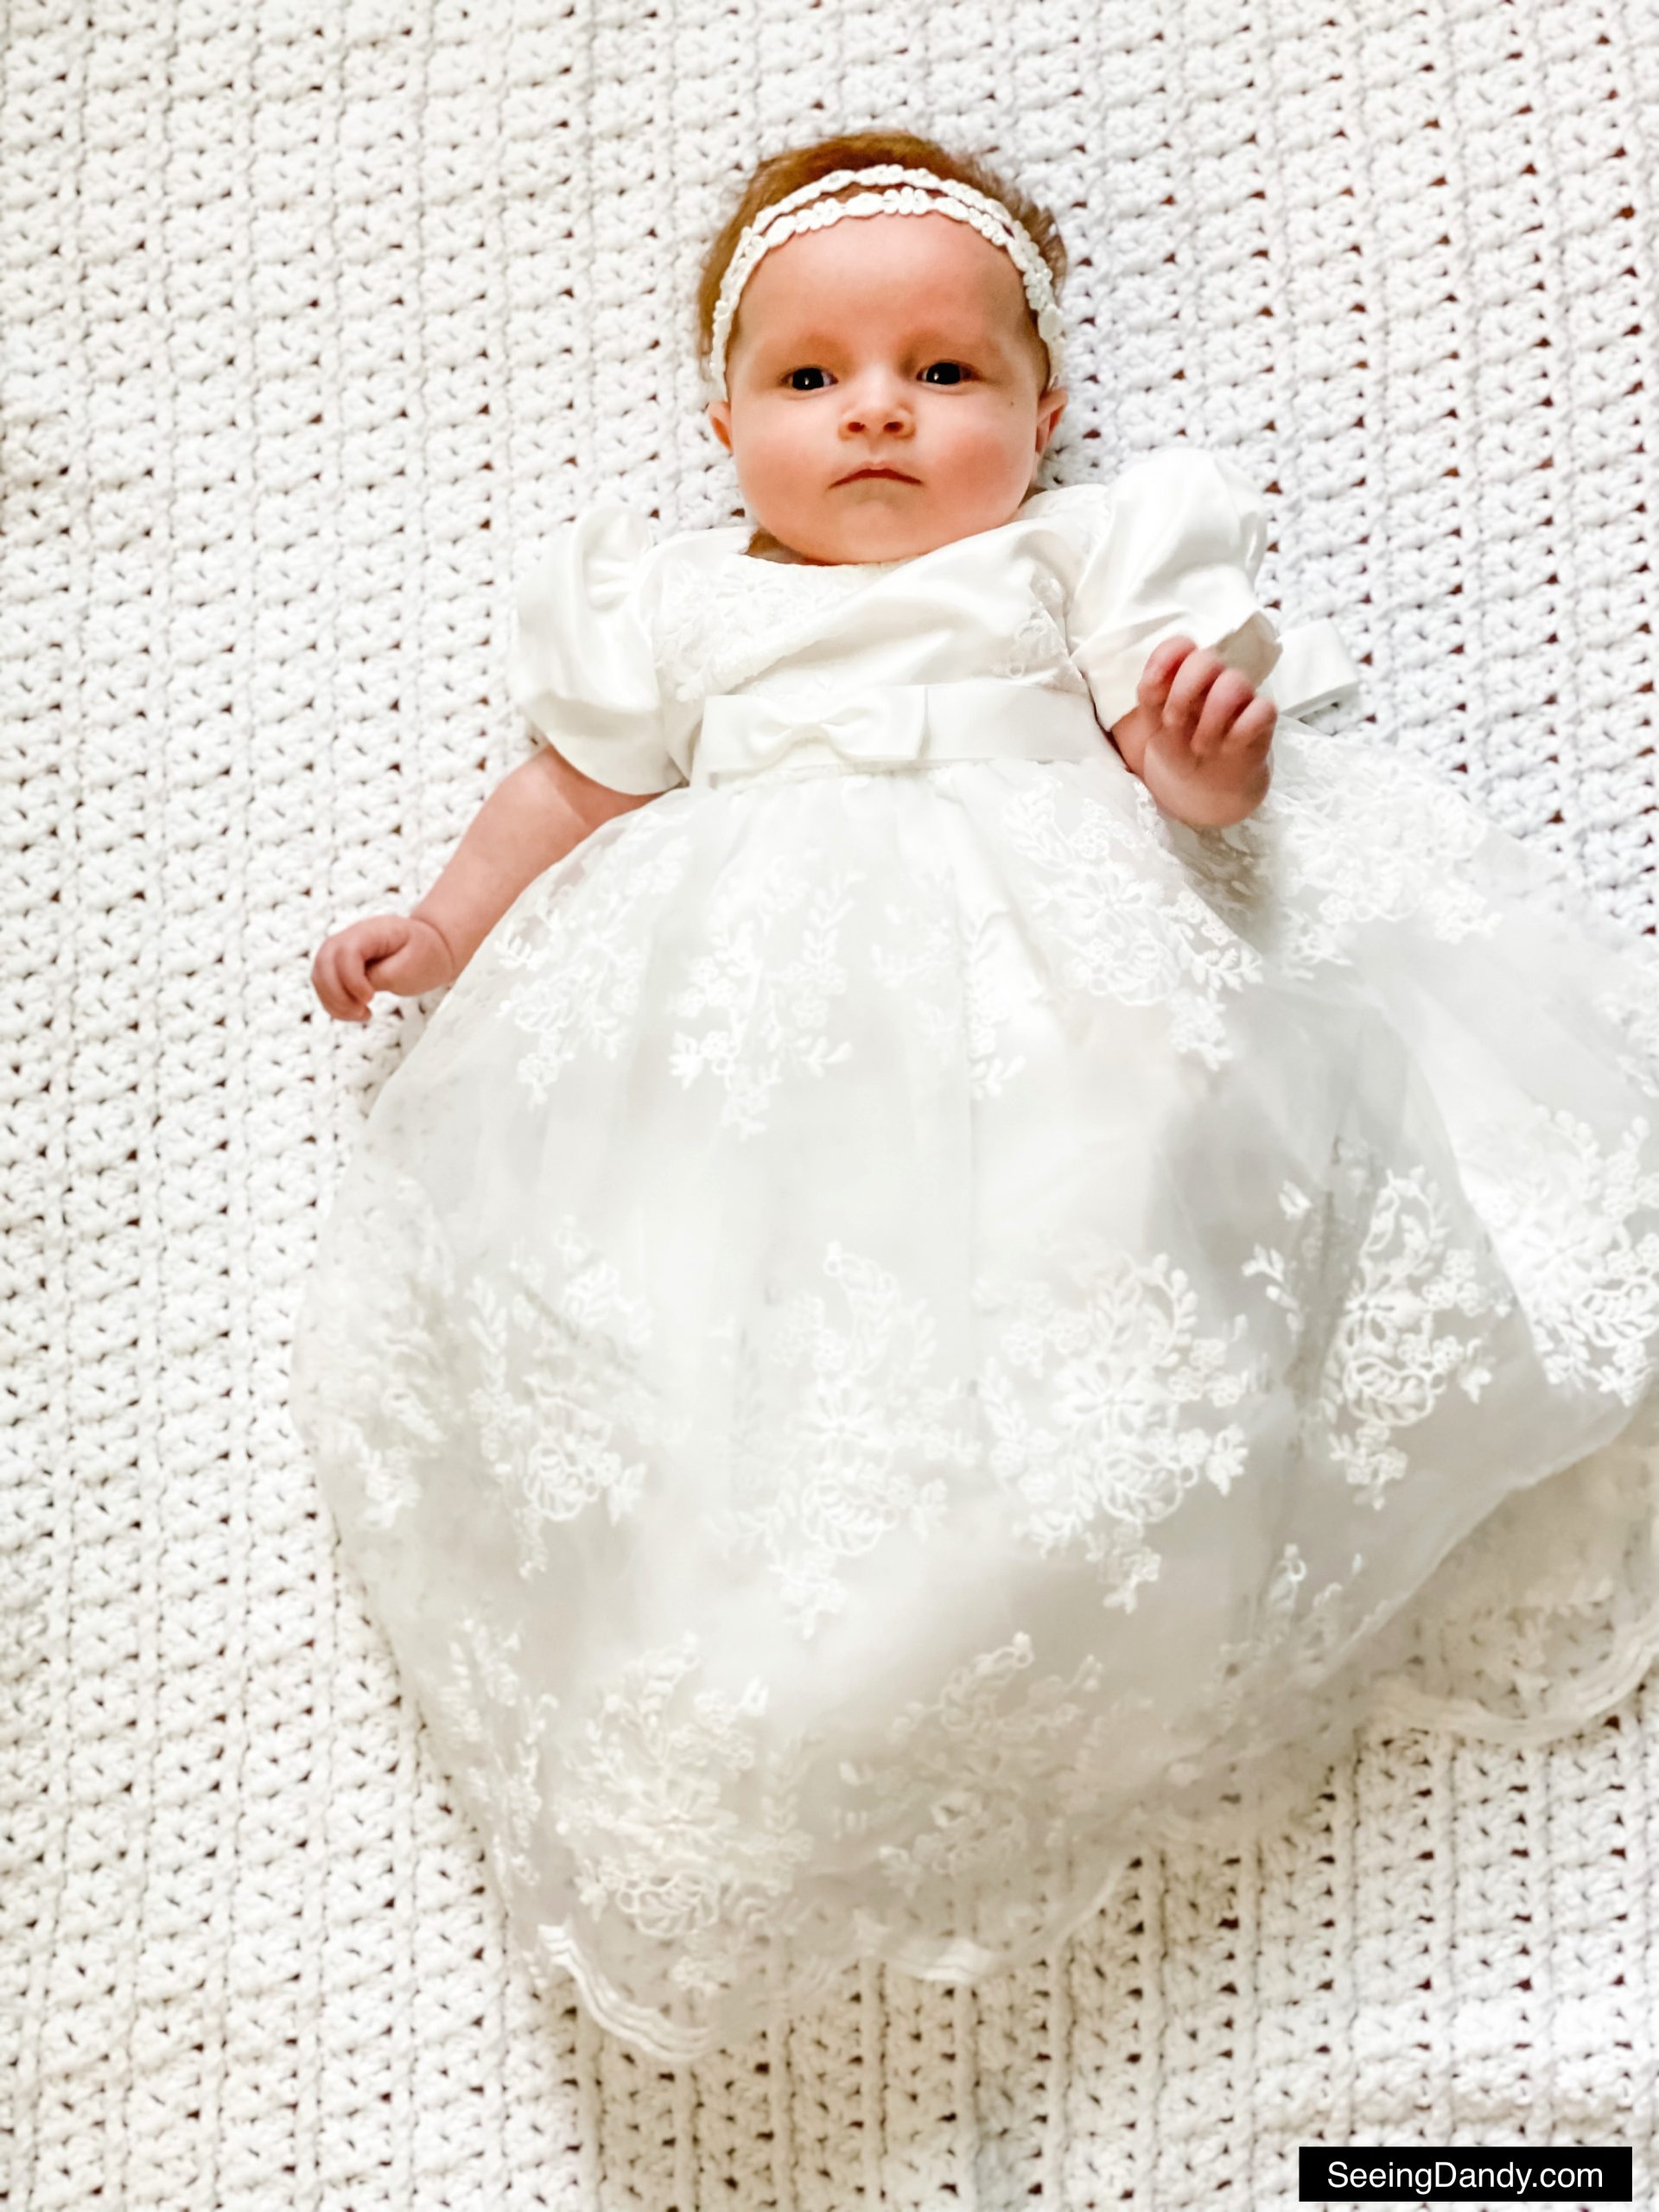 glamulice white lace baby dress, christening dresses, embroidery white baby dress, lds blessing dress, lds blessing gown, white crochet baby blanket, darcy baby girl name